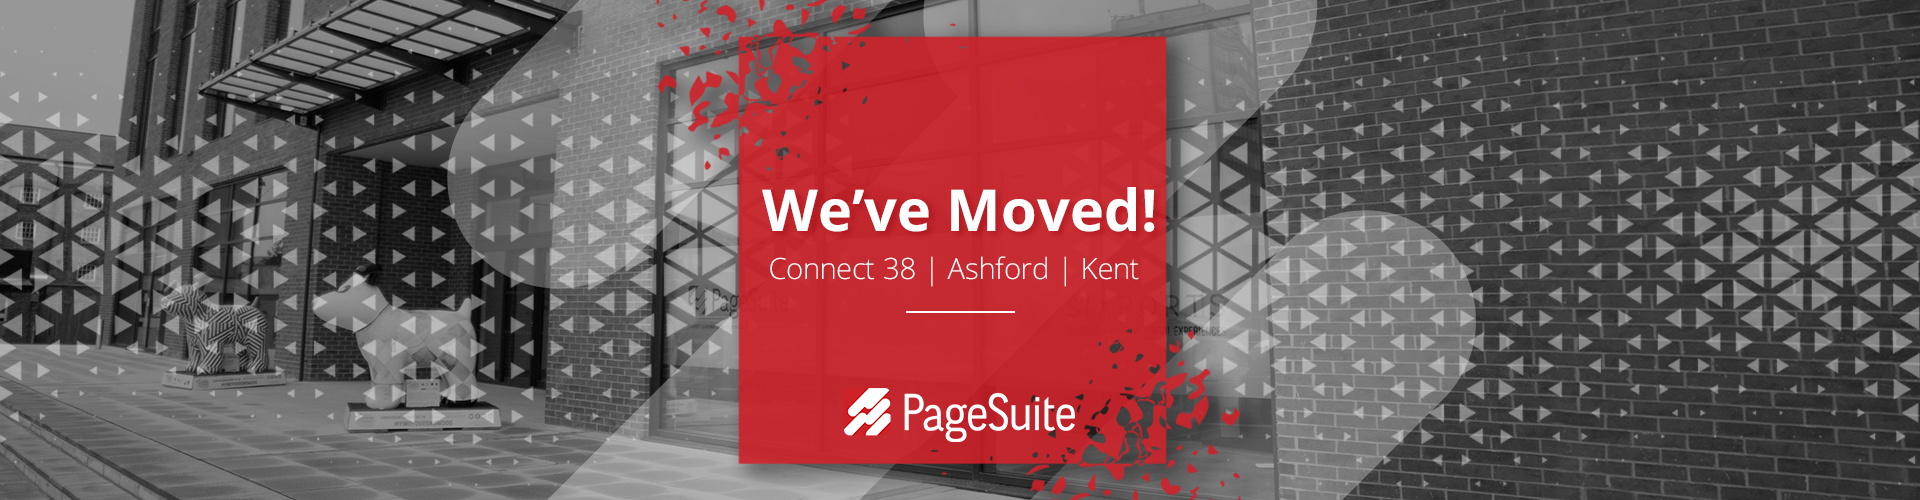 Image of PageSuite Move to a New HQ!